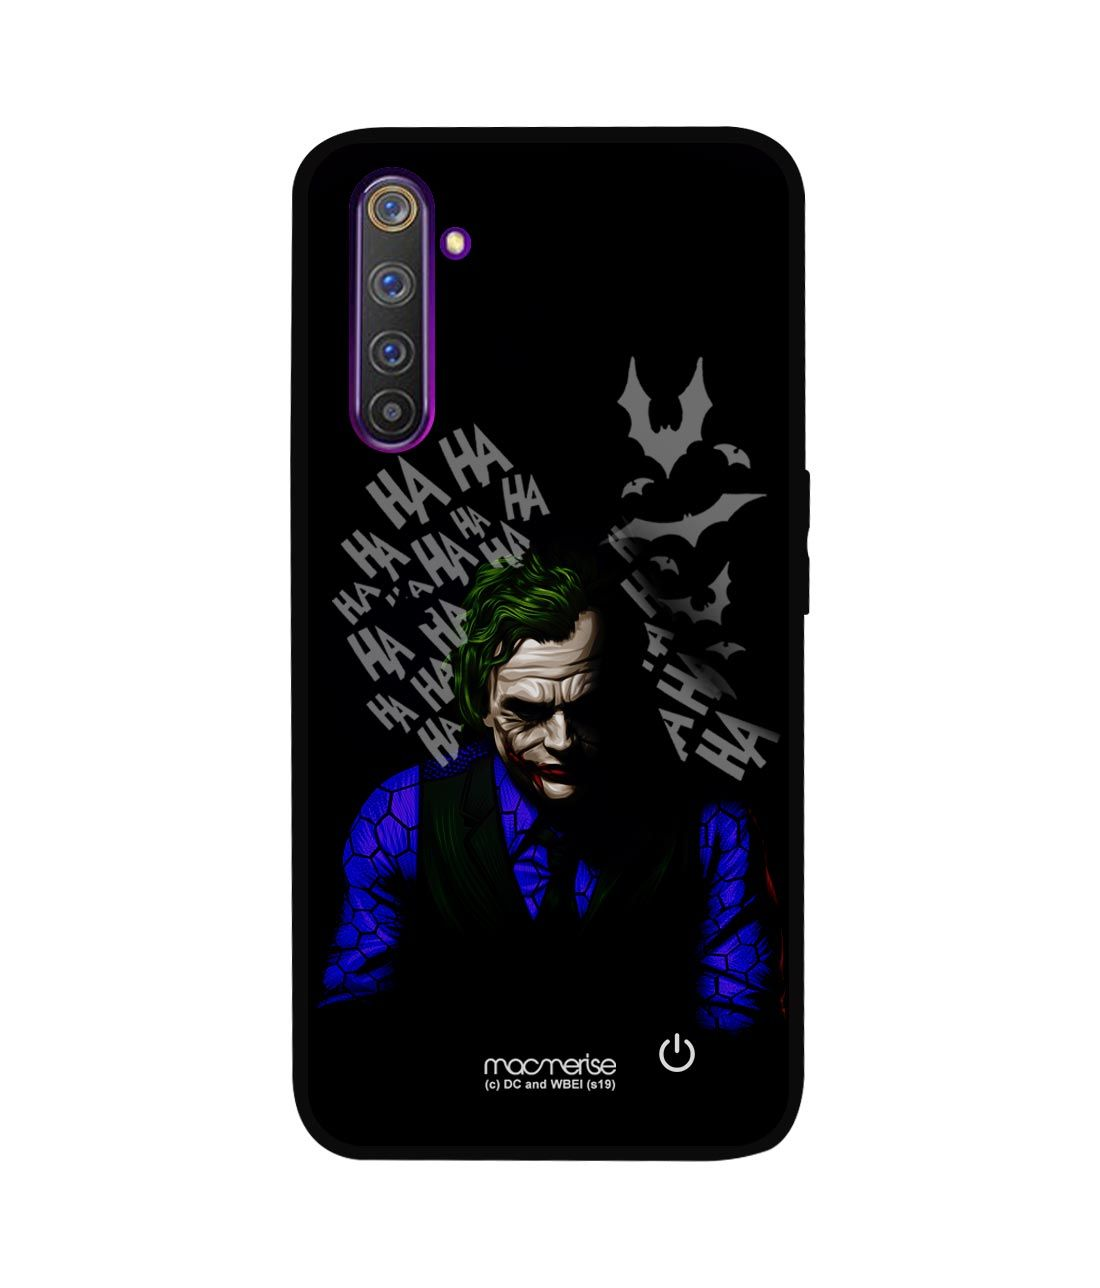 Guy with a Plan - Lumous LED Phone Case for Realme 6 Pro